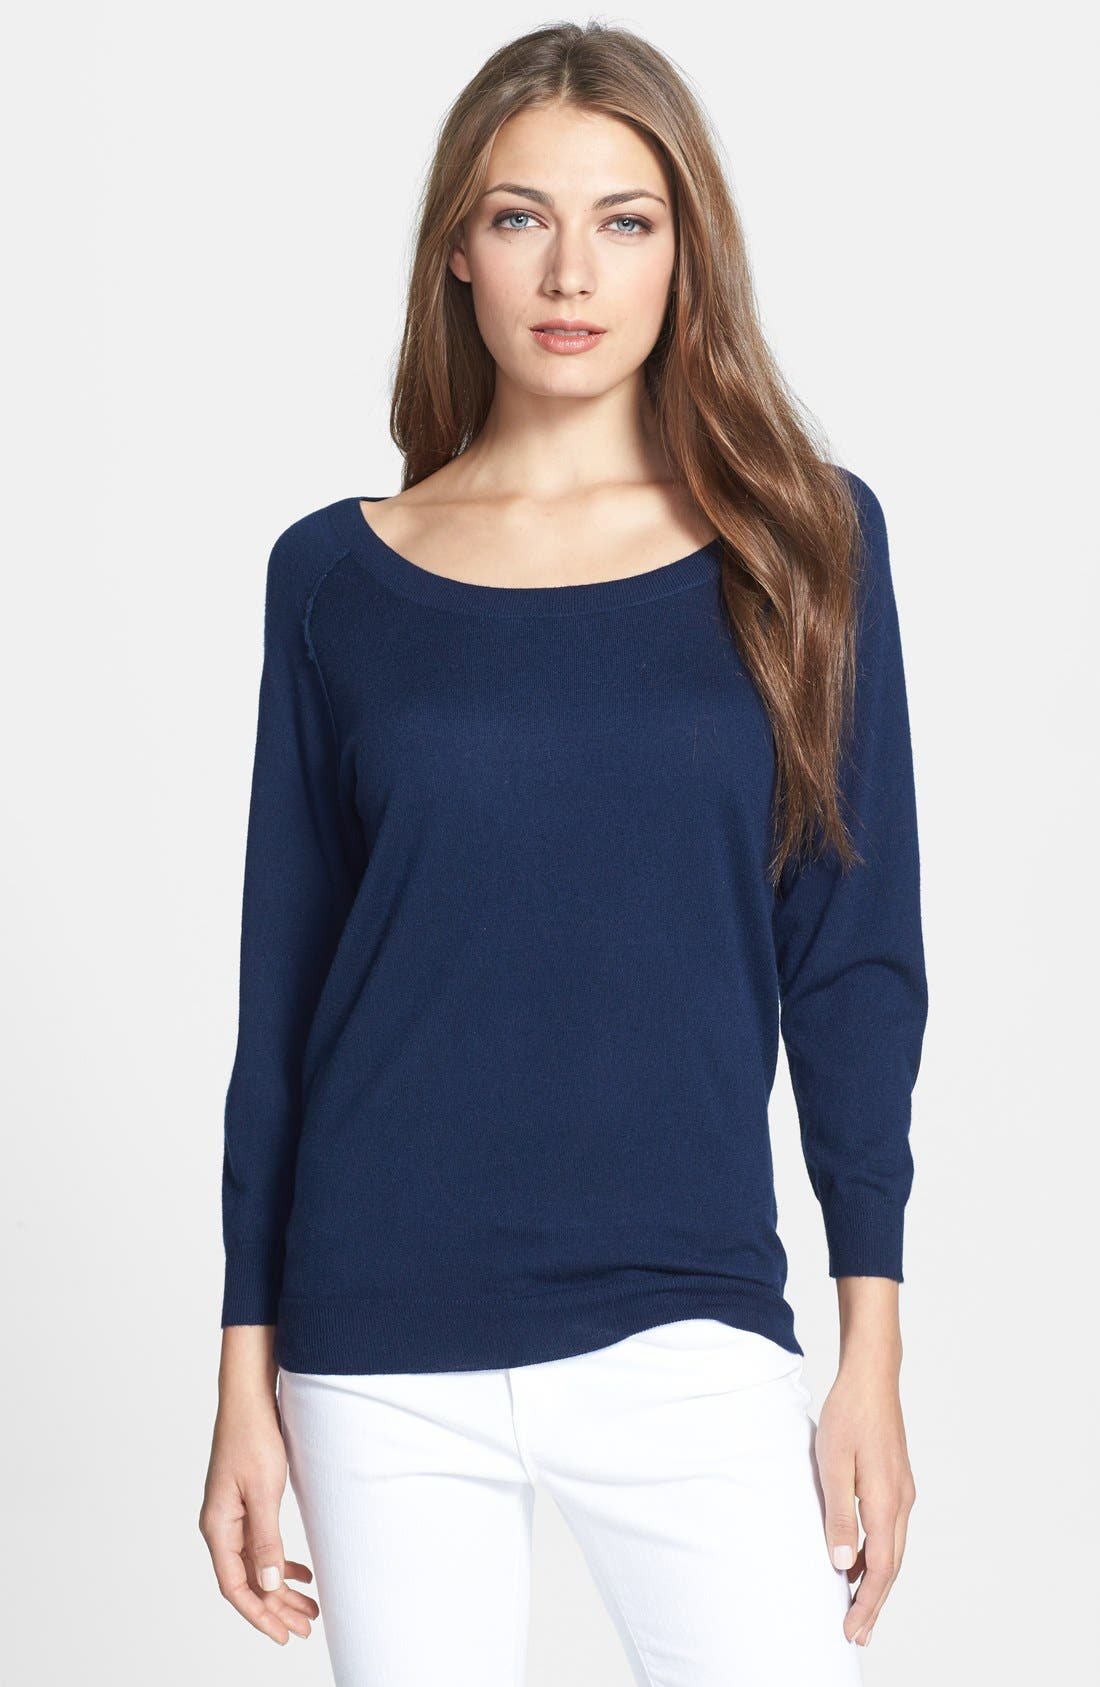 Alternate Image 1 Selected - Joie 'Bronx' Elbow Patch Slouchy Sweater